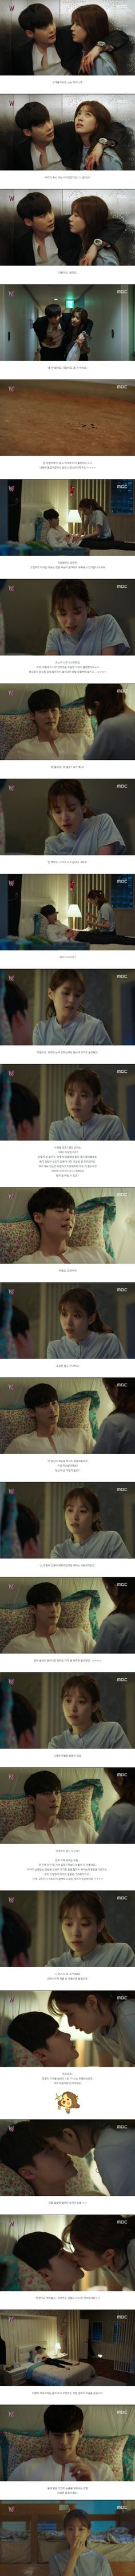 Added episode 10 captures for the Korean drama 'W'.